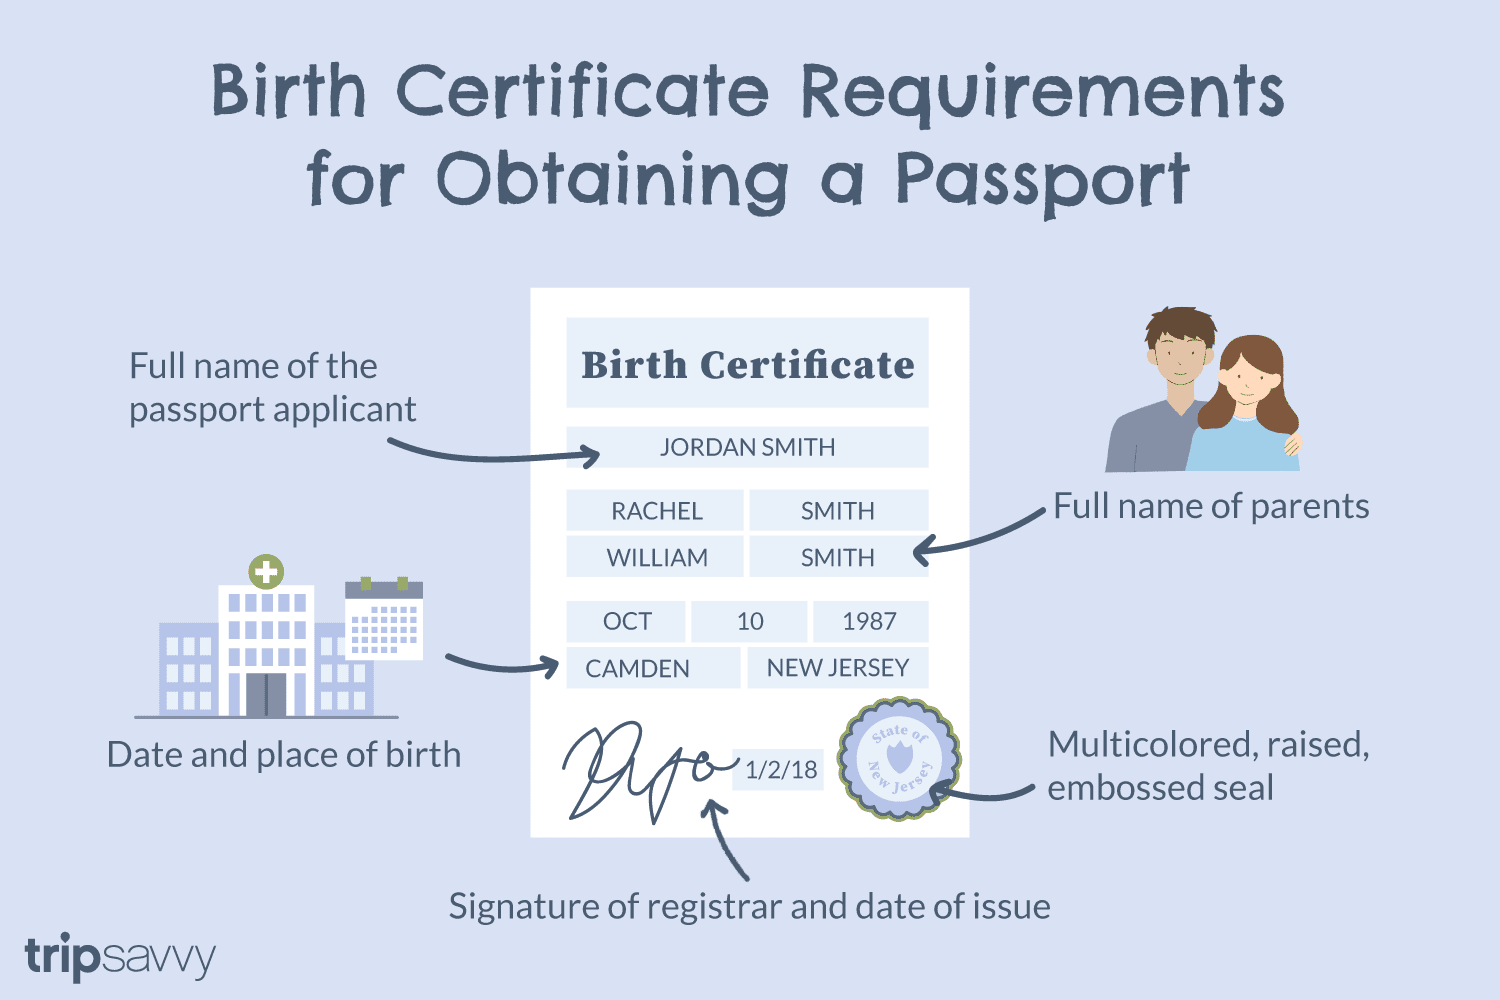 Proof of Citizenship Requirements for US Passports